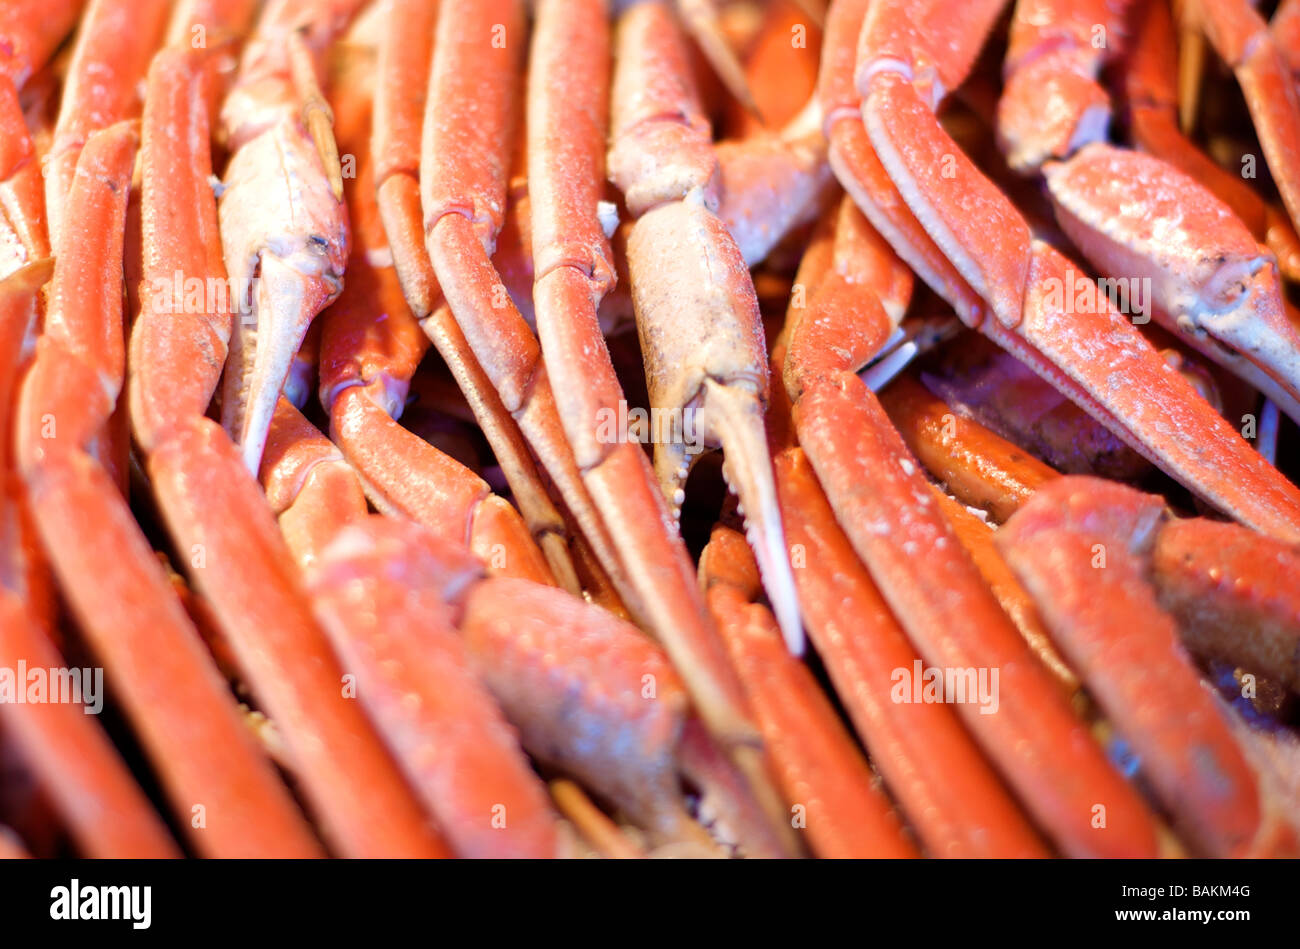 Colourful Closeup Photo of Crab Legs on Display at a Seafood Market - Stock Image